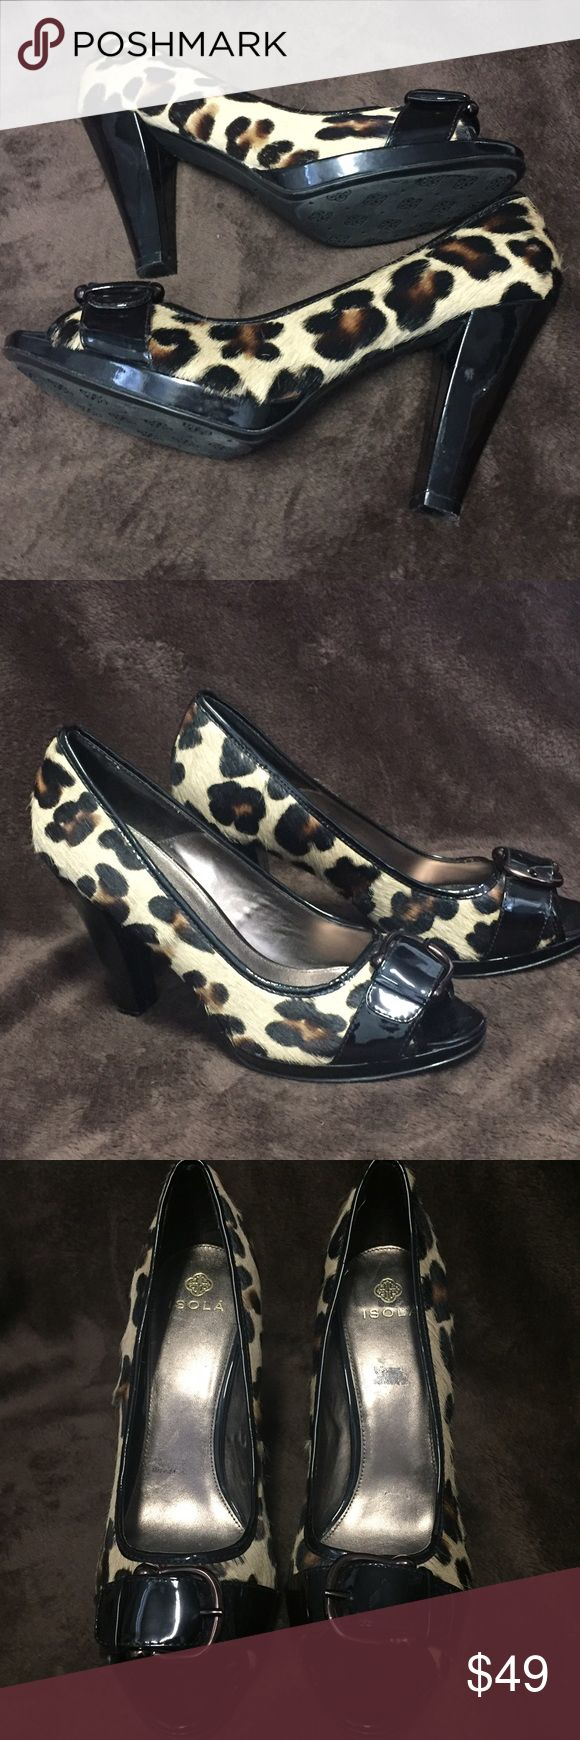 "ISOLA animal print horse hair heels sz 11 Beautiful ISOLA animal print high heel shoes. 1/2"" platform with Sturdy 4"" heel. Made from horse hair. Excellent condition. No major flaws. Size is 11. 🦄Suggested User🦄 ISOLA  Shoes Heels"